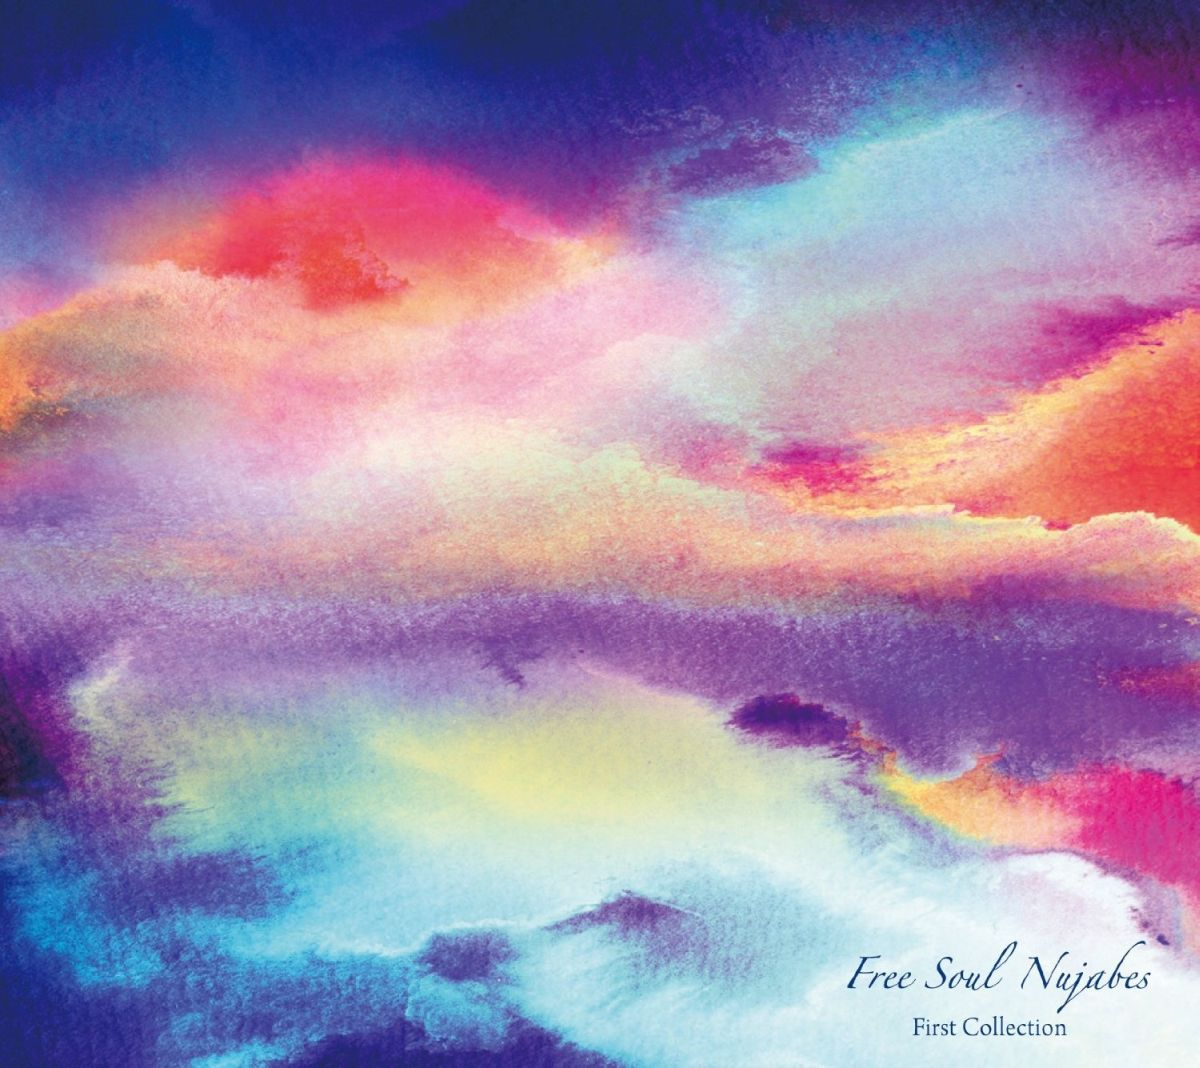 ラップ・ヒップホップ, その他 Free Soul Nujabes - First Collection (V.A.)